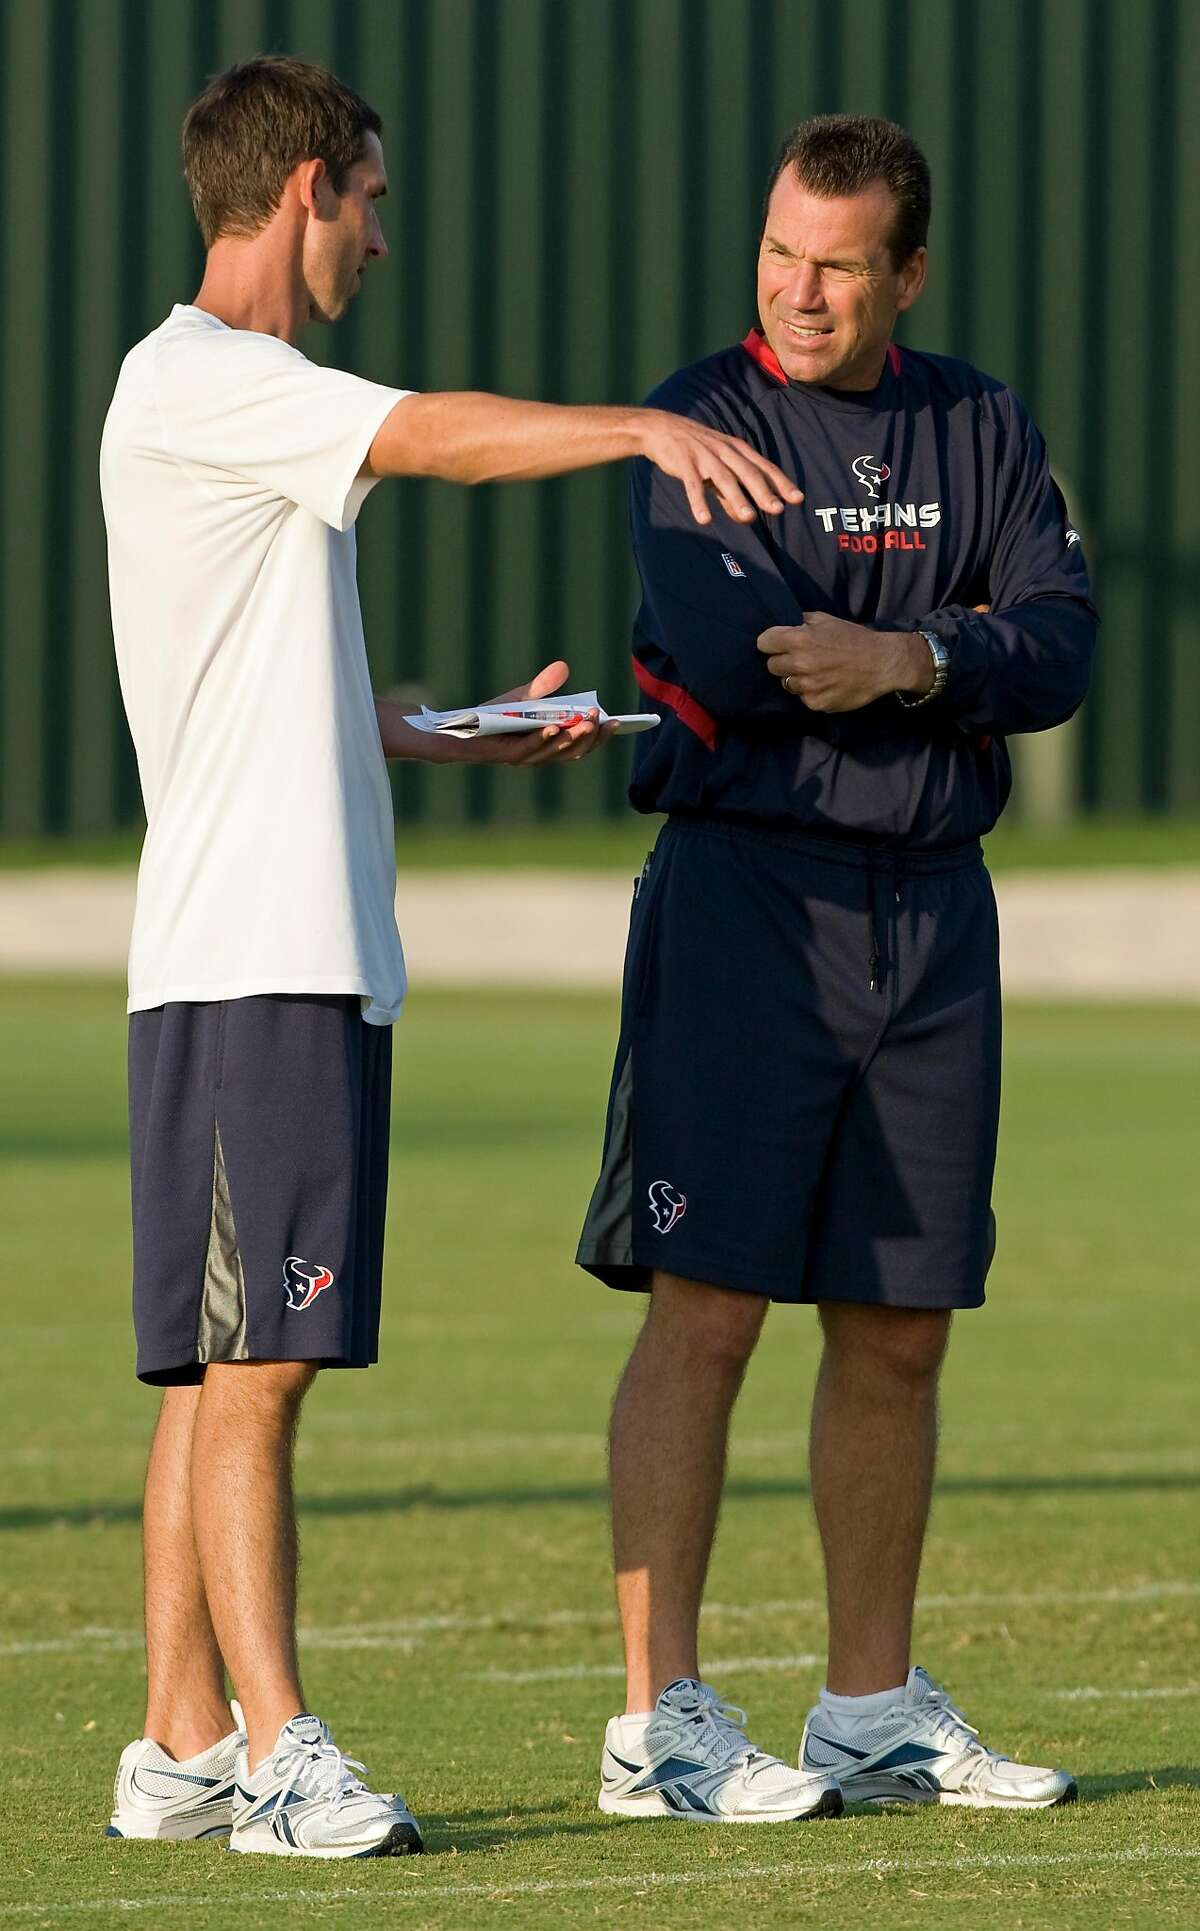 Then-Houston Texans offensive coordinator Kyle Shanahan, left, and head coach Gary Kubiak talk during an a 2009 practice. Shanahan - now the 49ers' head coach - has hired Kubiak's son Klay as his defensive quality control coach.